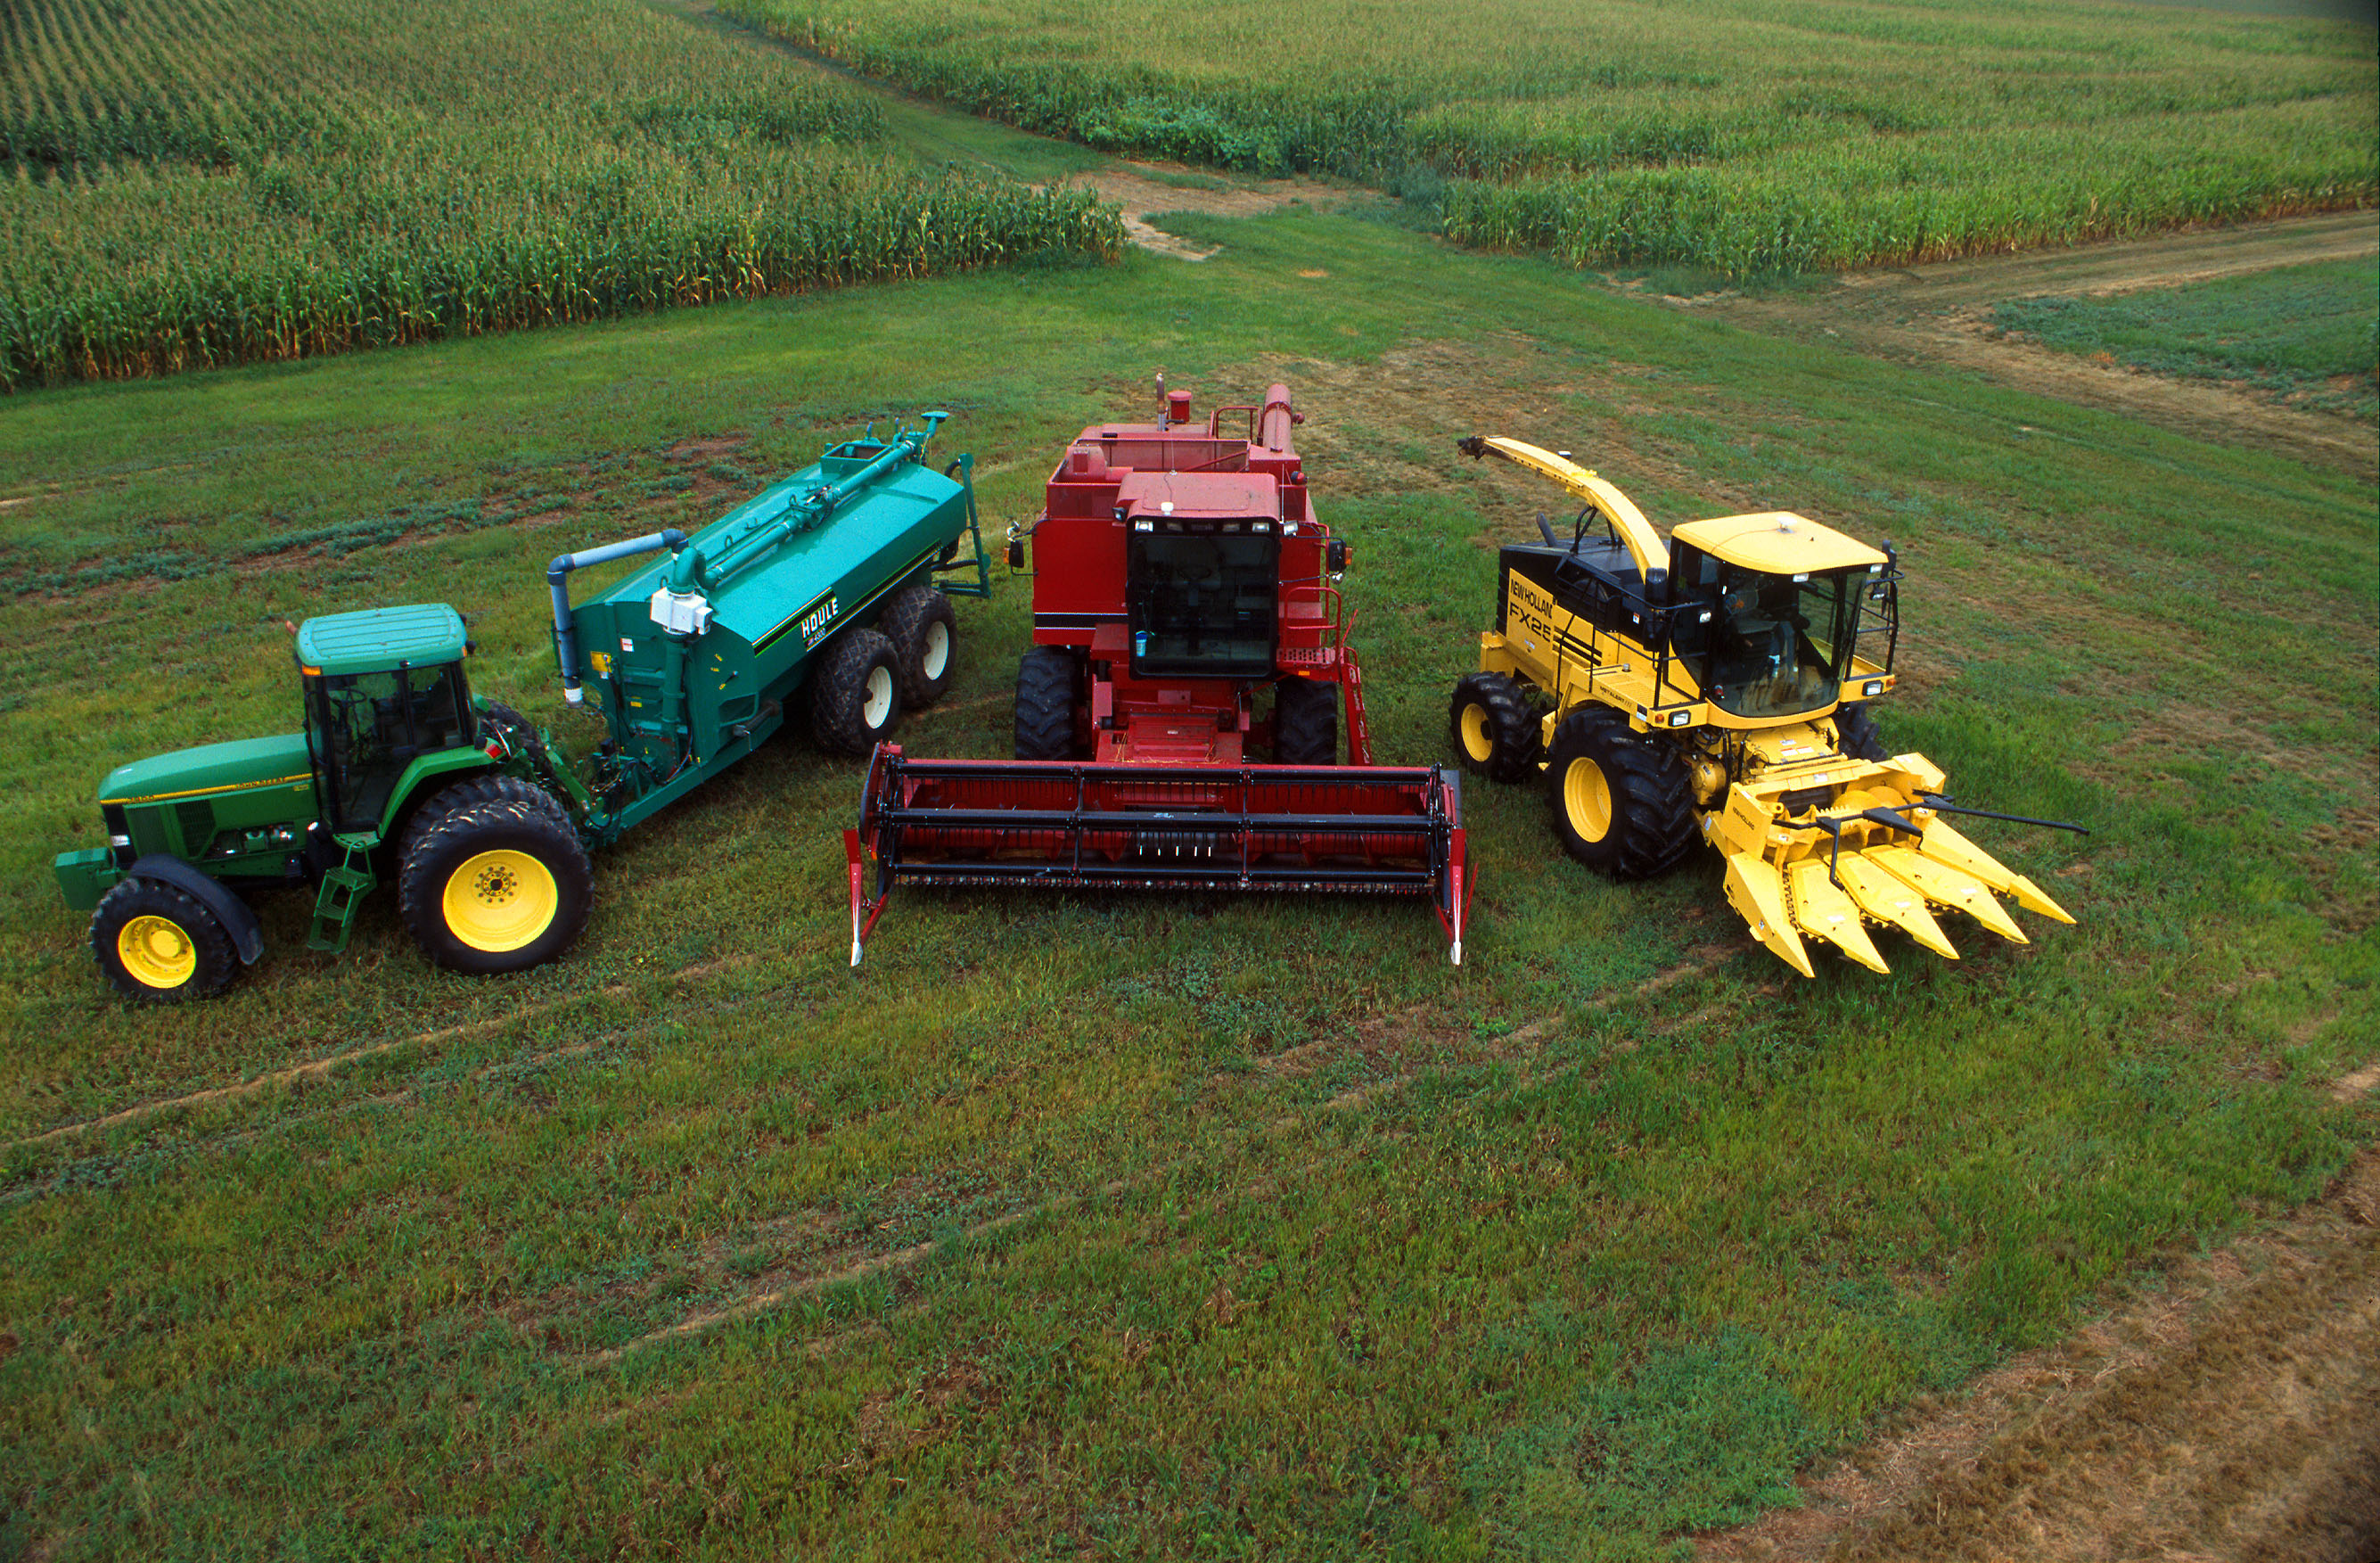 File:Agricultural machinery.jpg - Wikimedia Commons